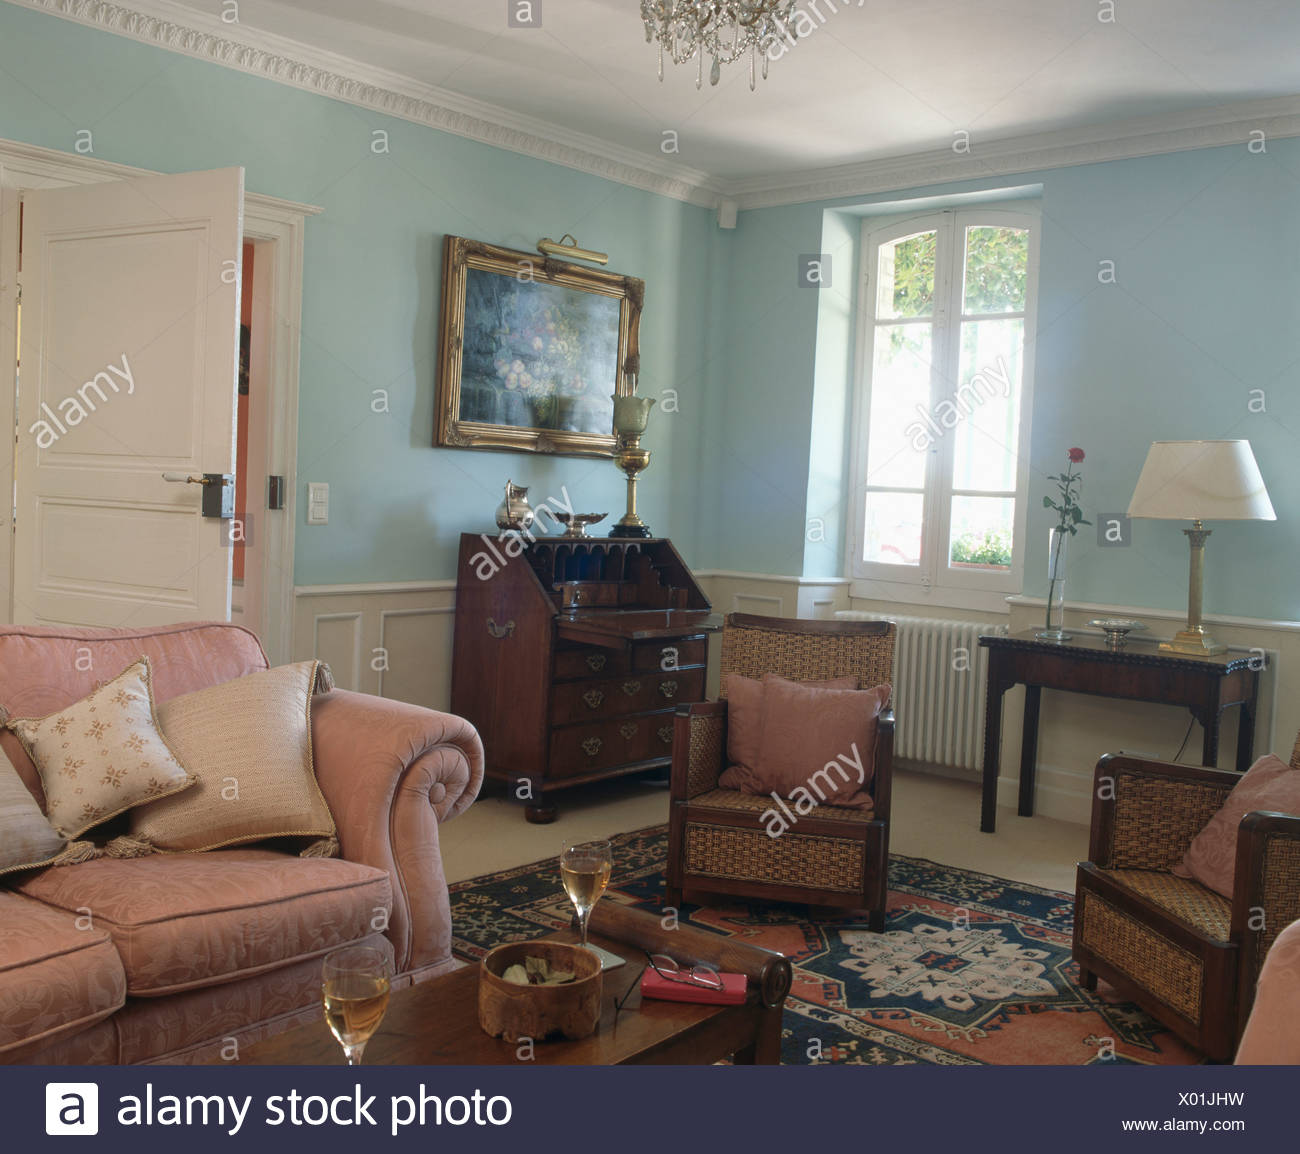 Pink sofa and English antique furniture in pastel blue ...